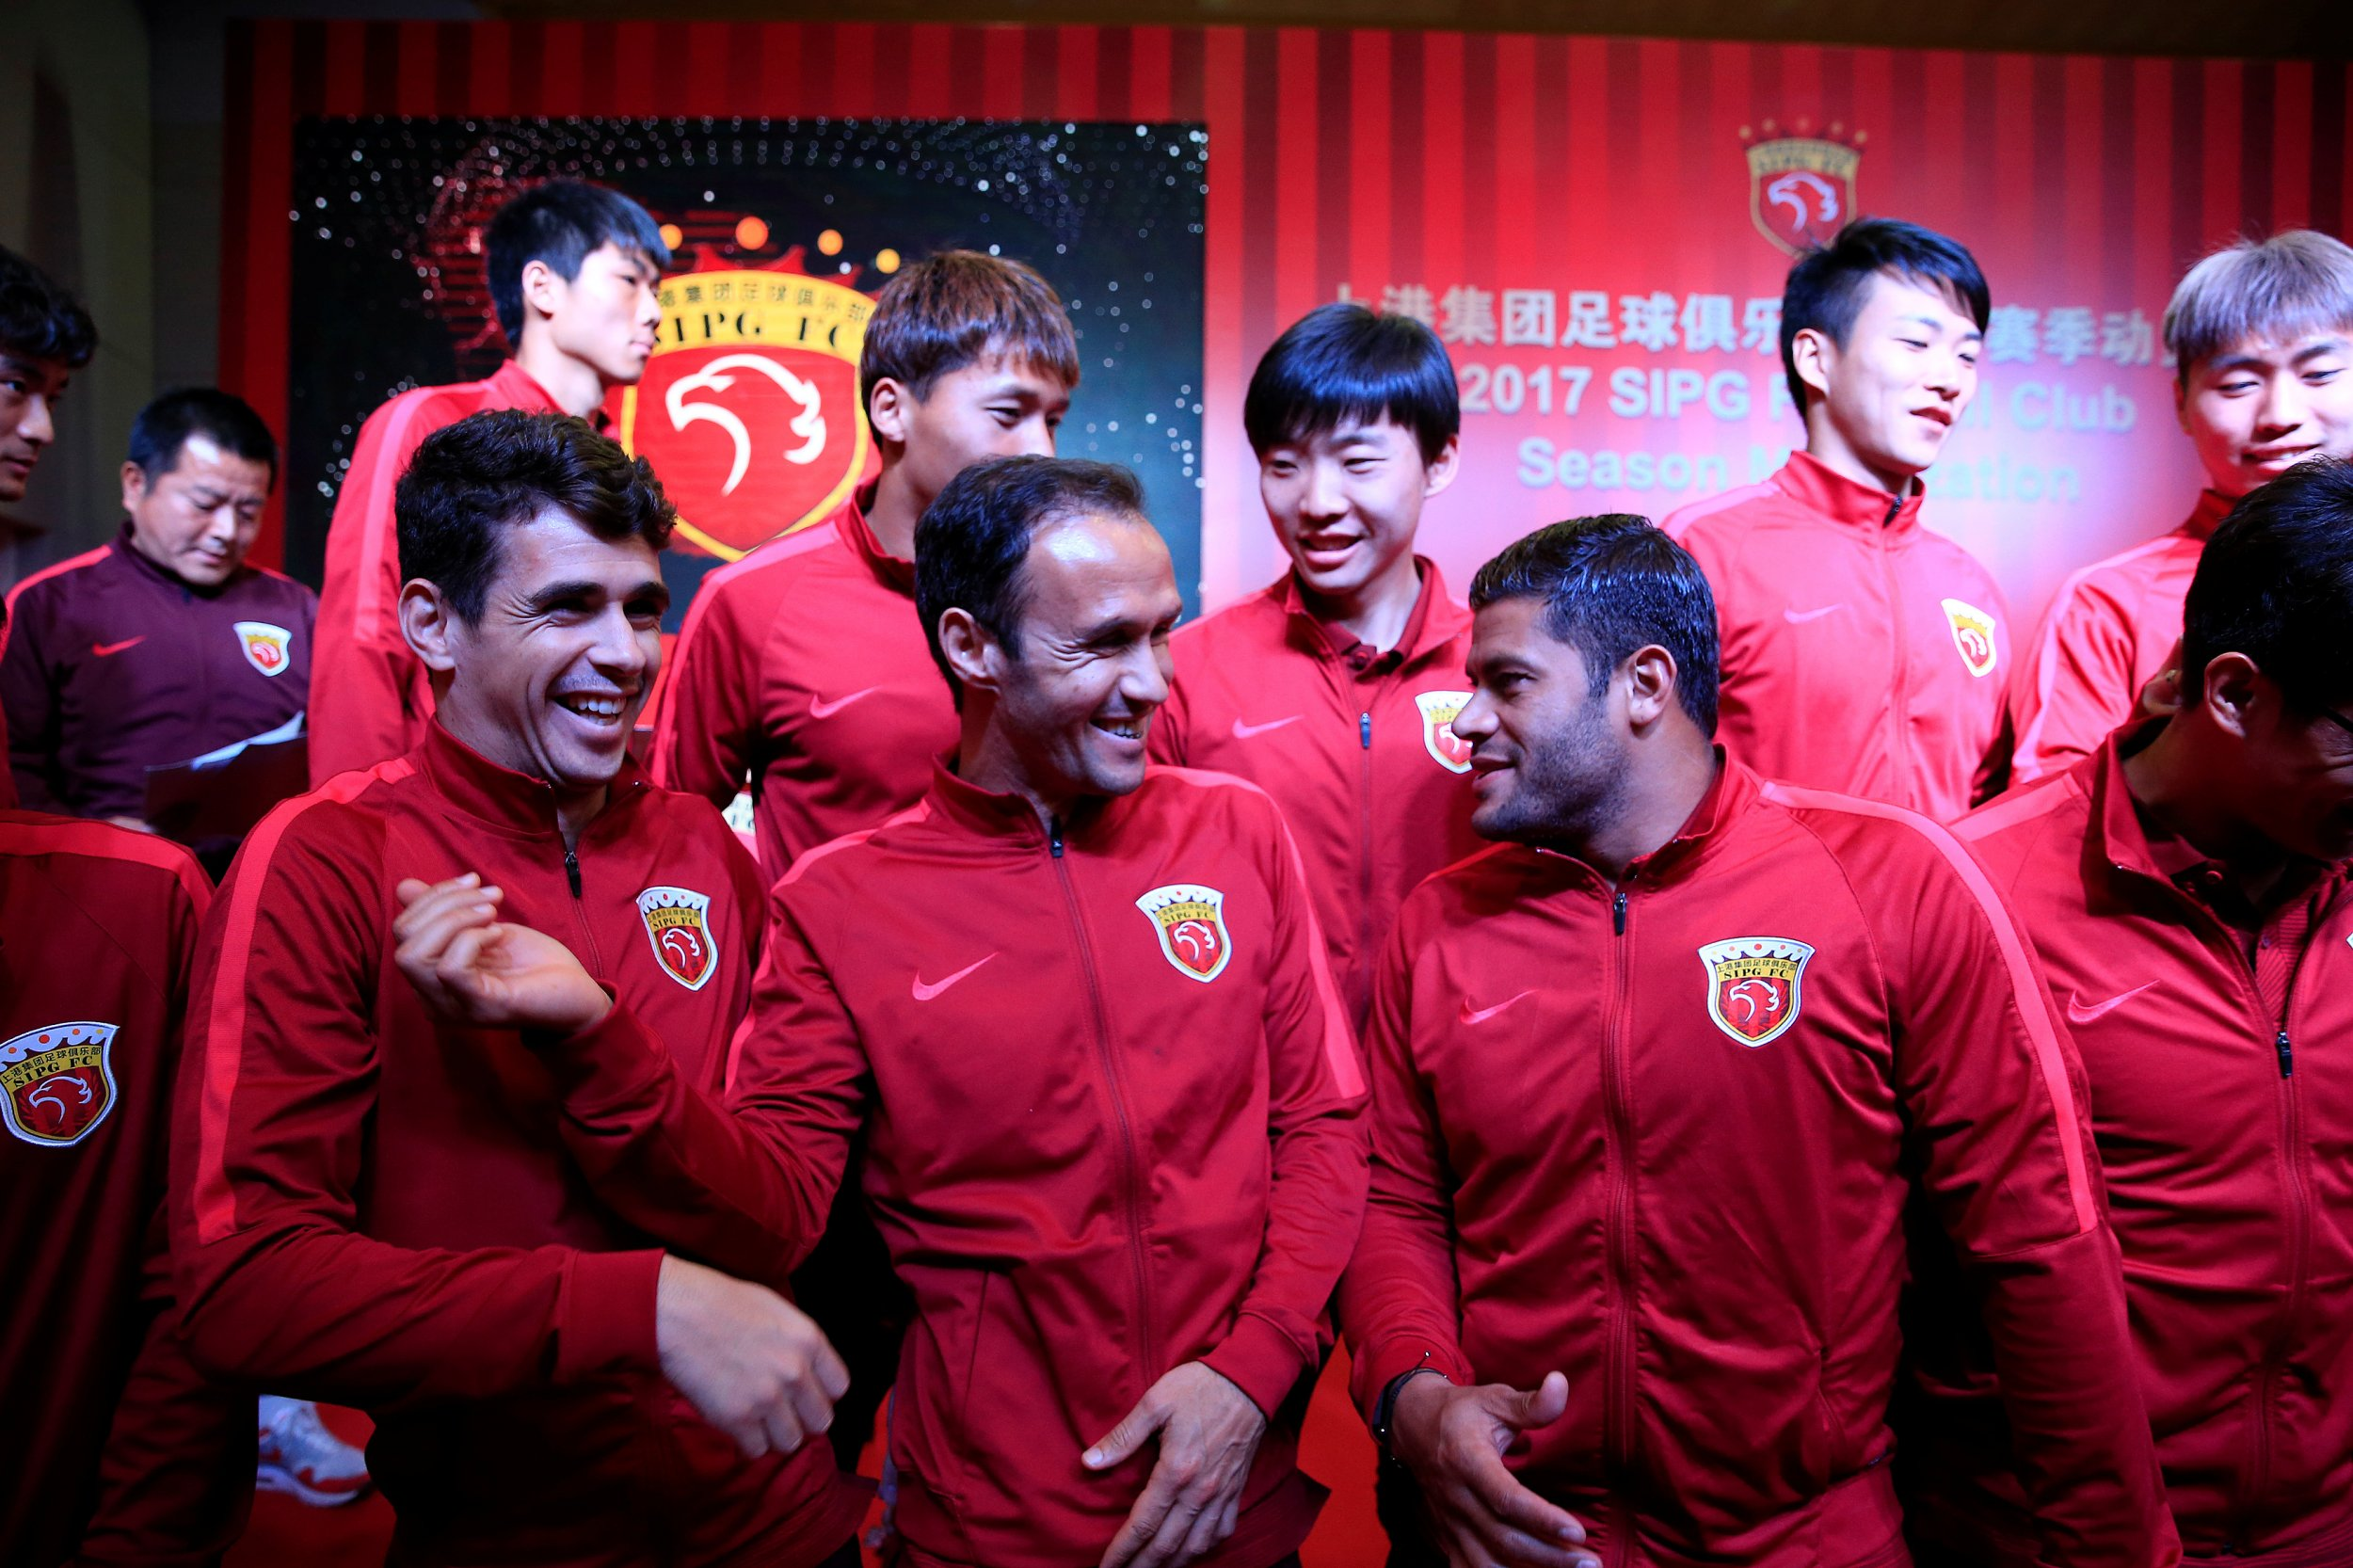 SIPG Football players